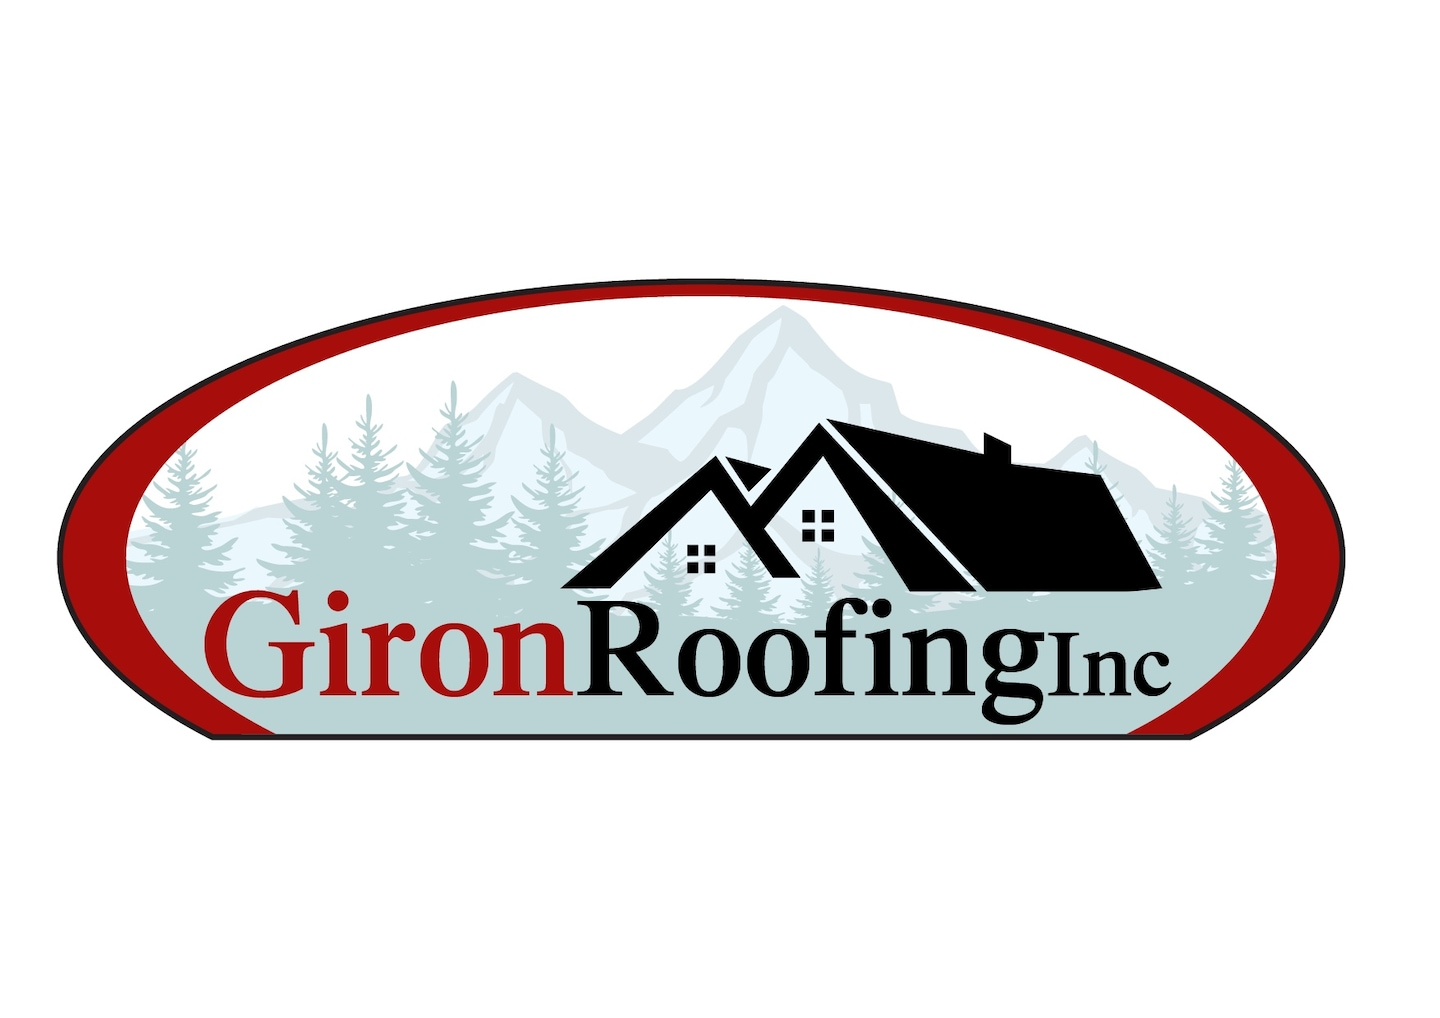 Giron Roofing Inc.